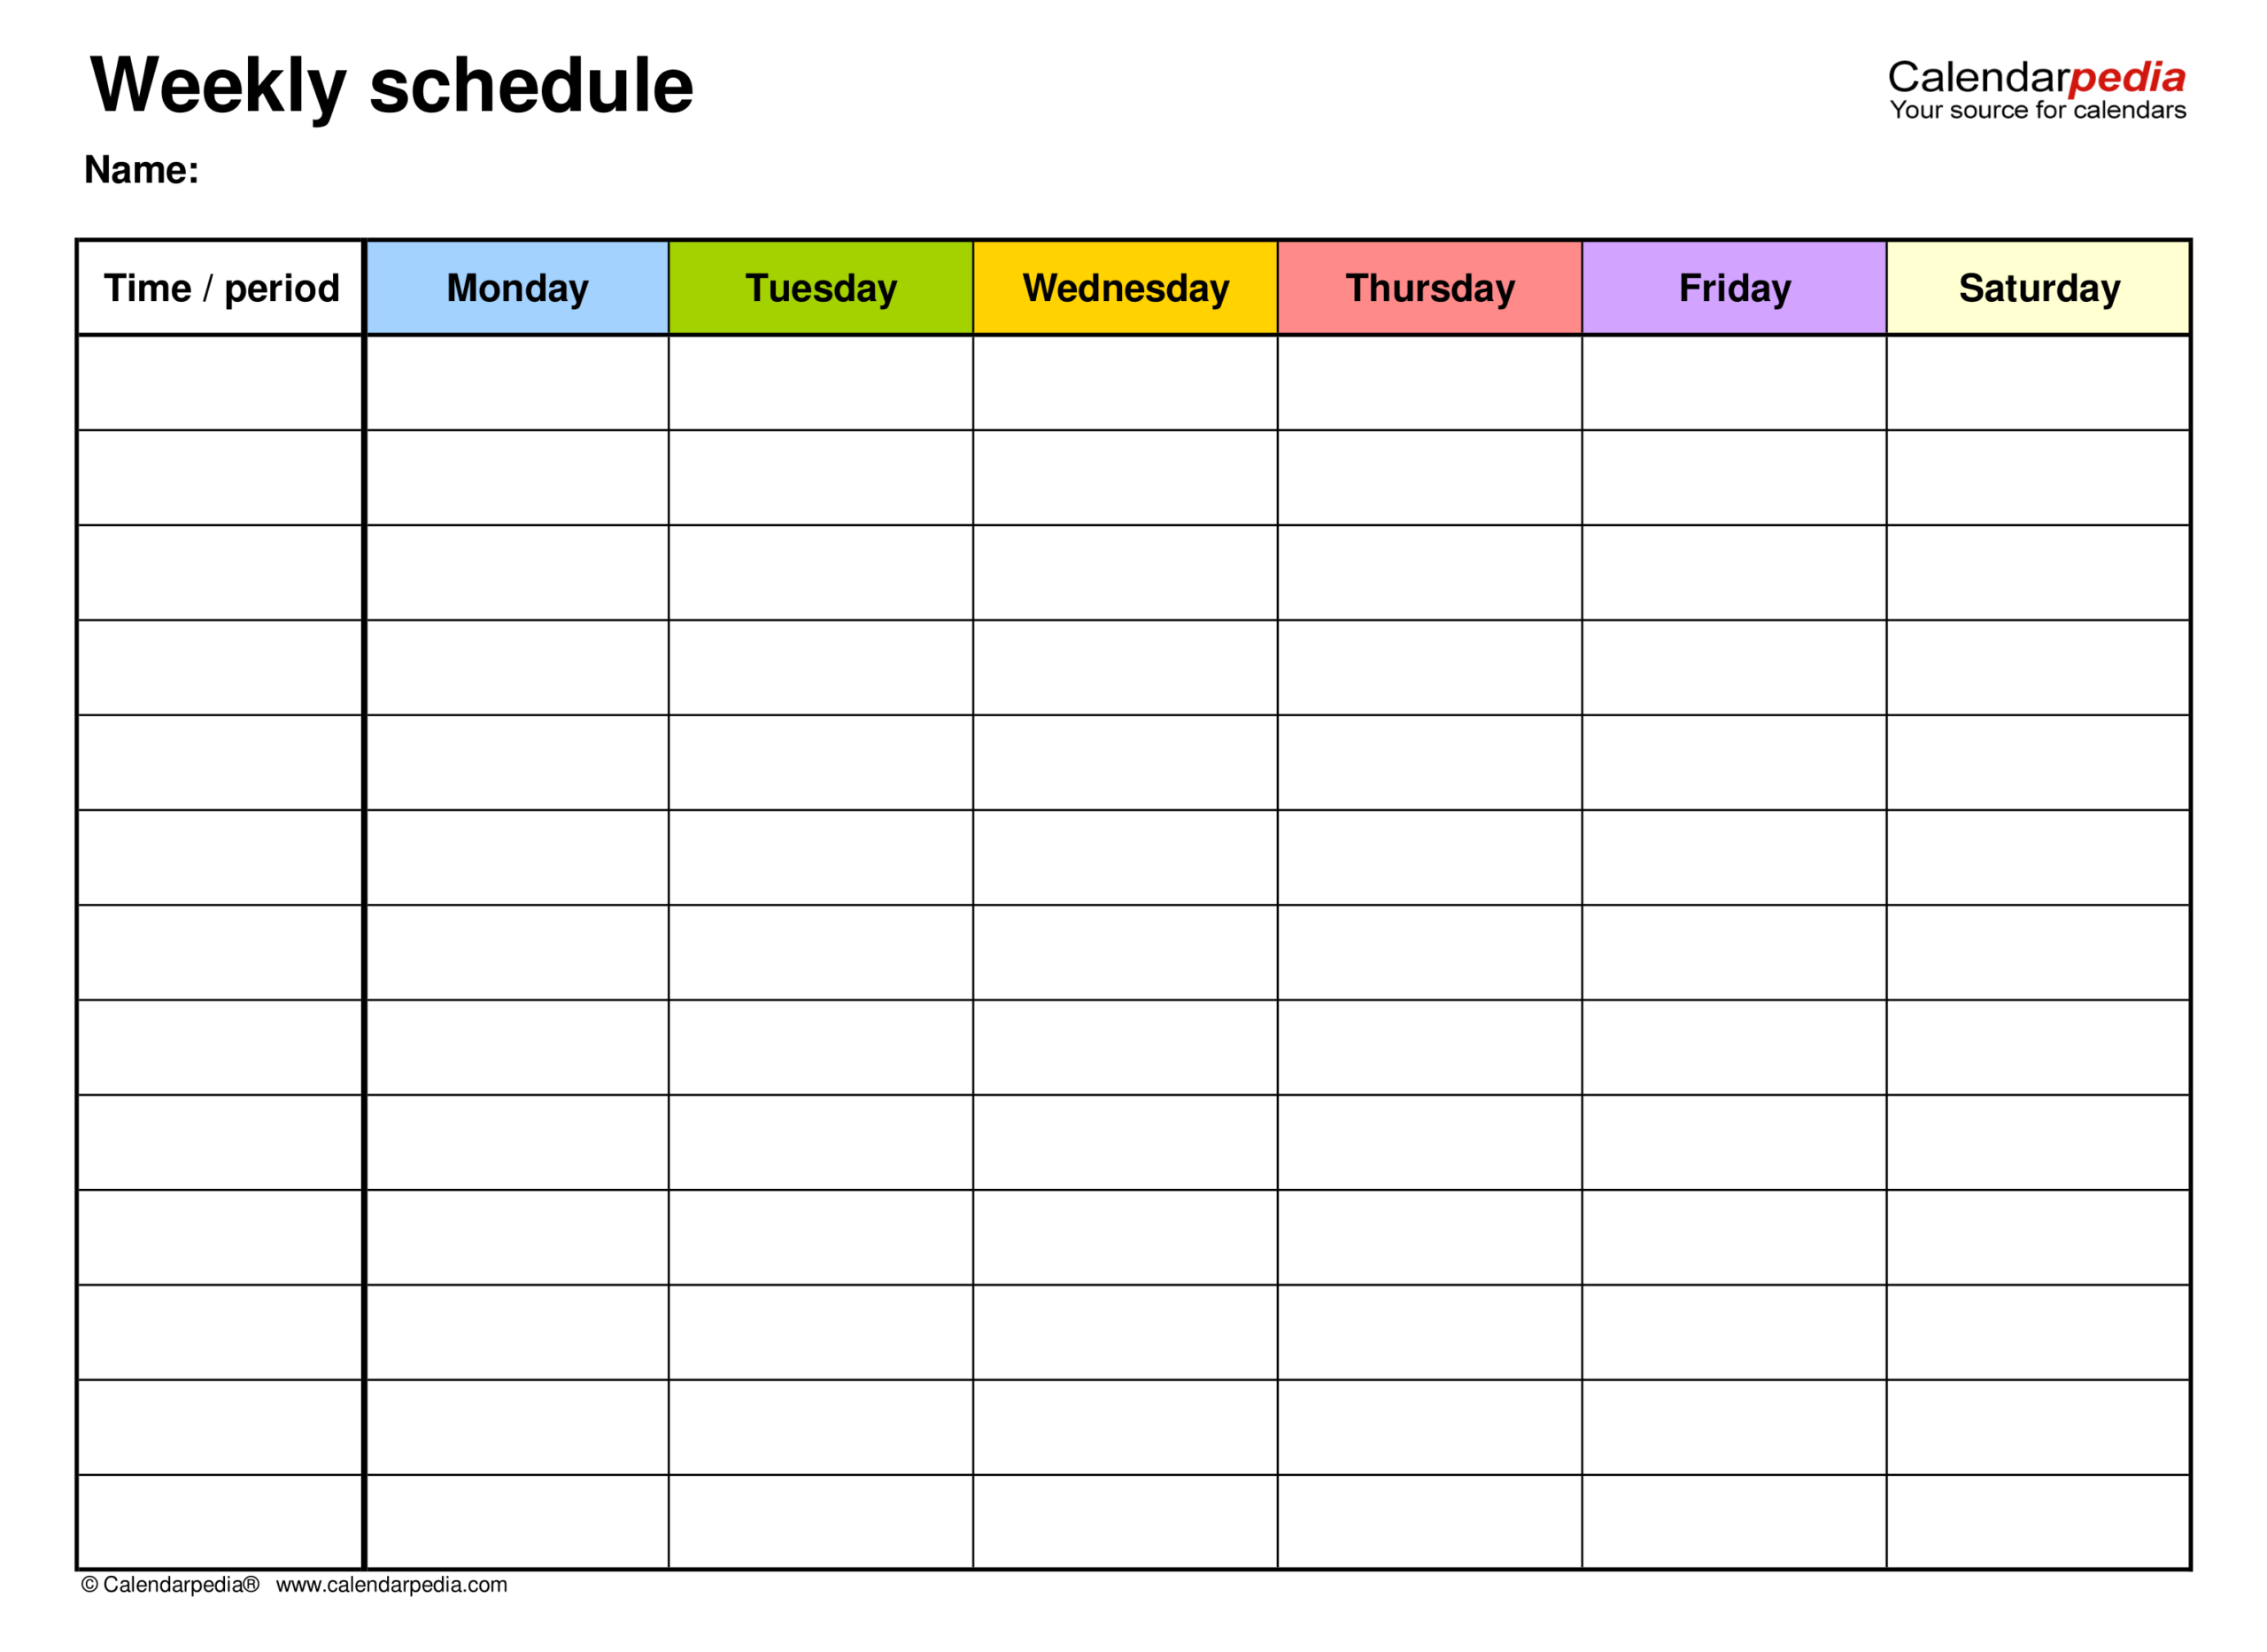 Free Weekly Schedules For Pdf - 18 Templates